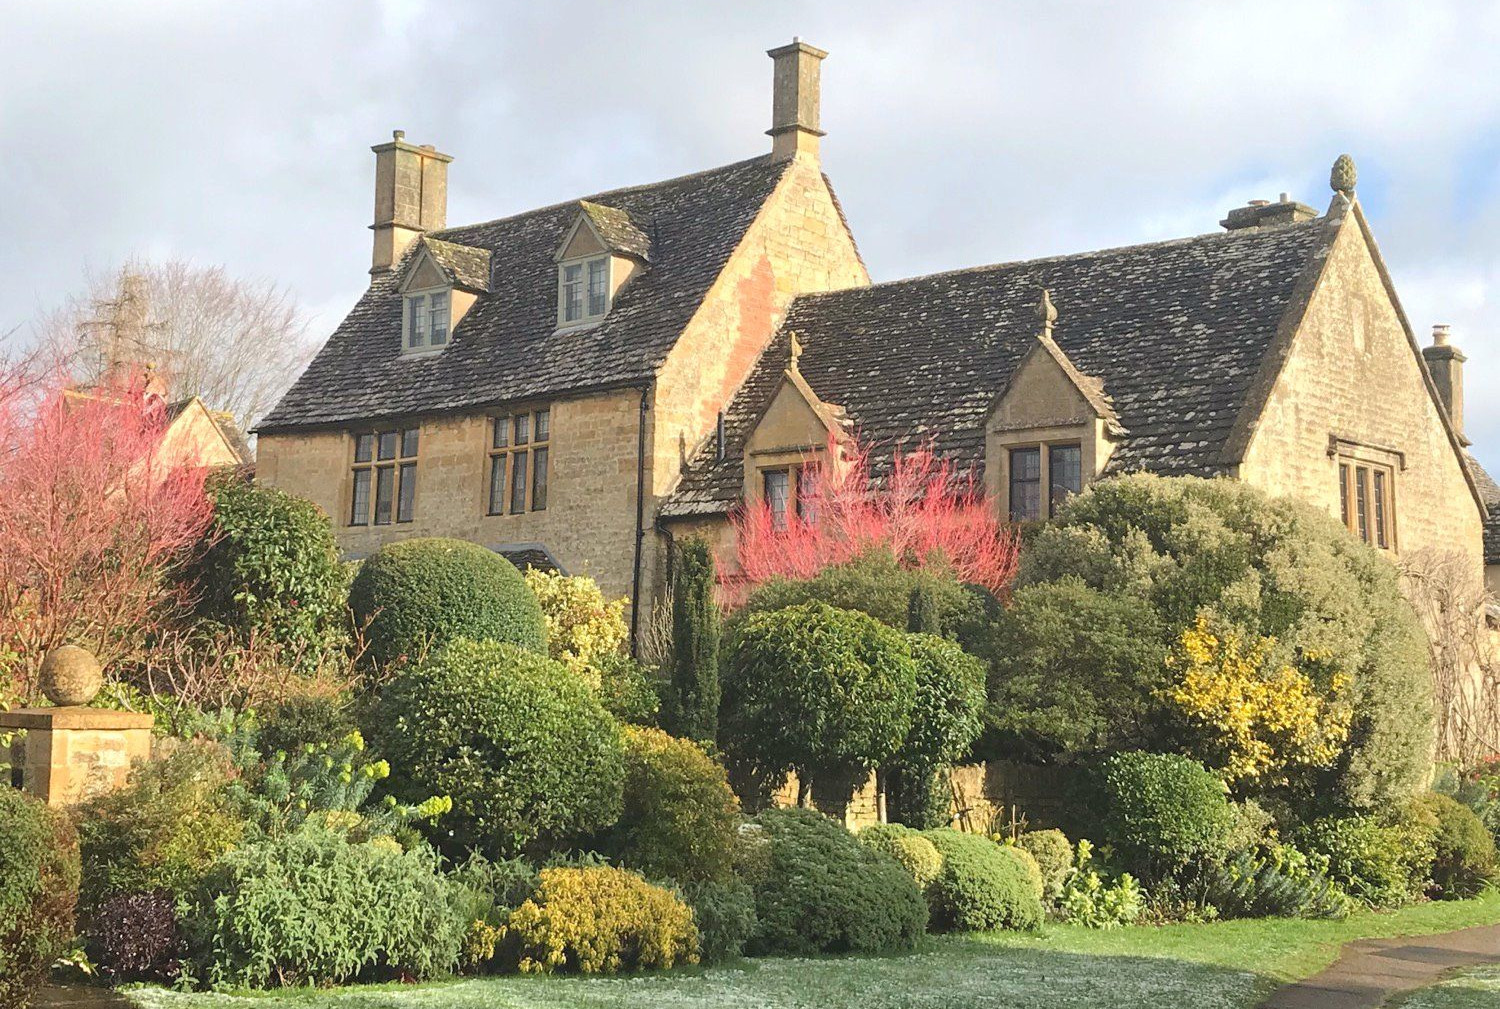 Visit Chipping Campden